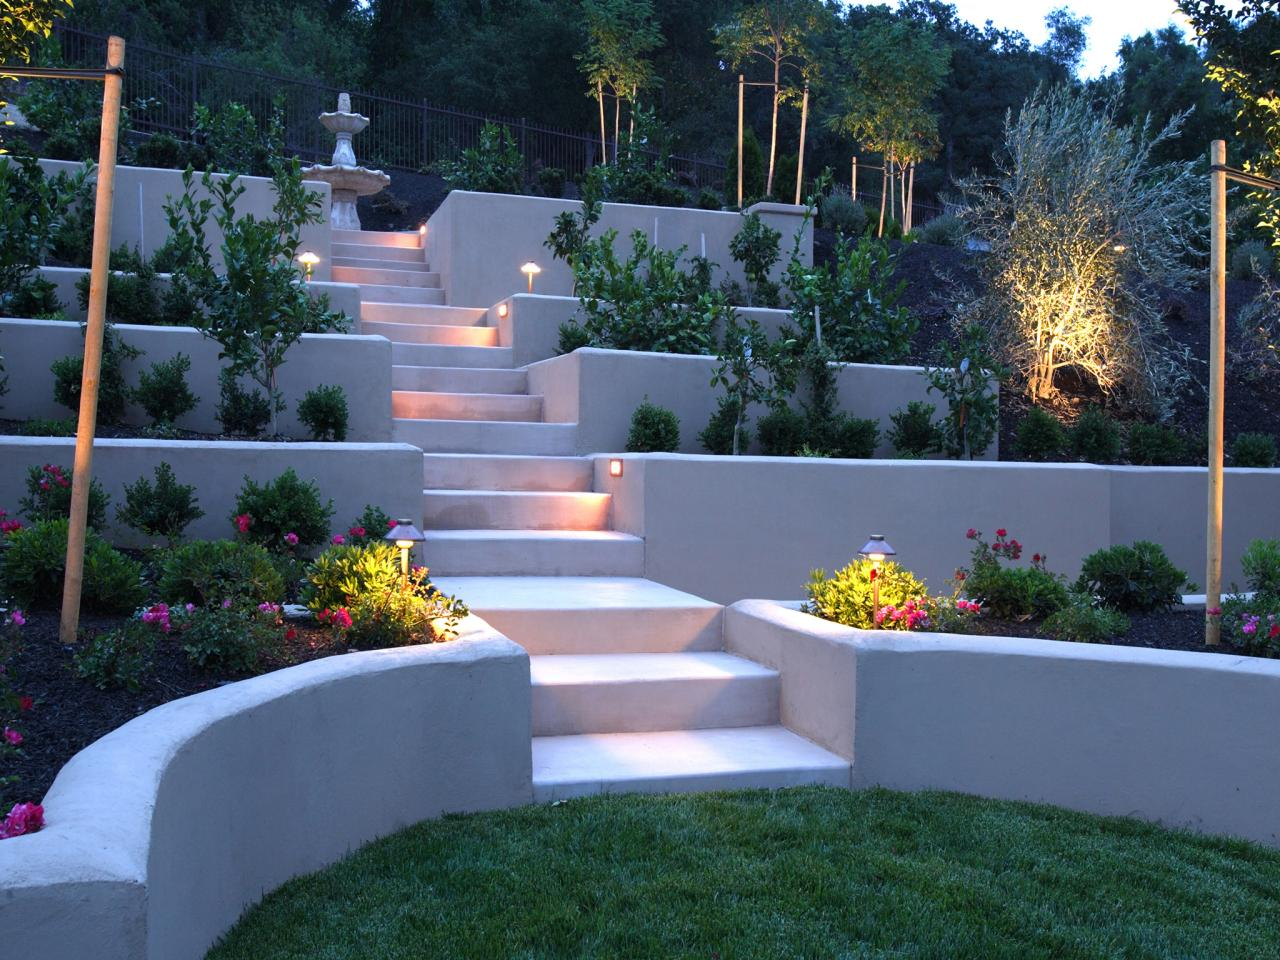 Hardscape Design Ideas HGTV - Backyard hardscape ideas